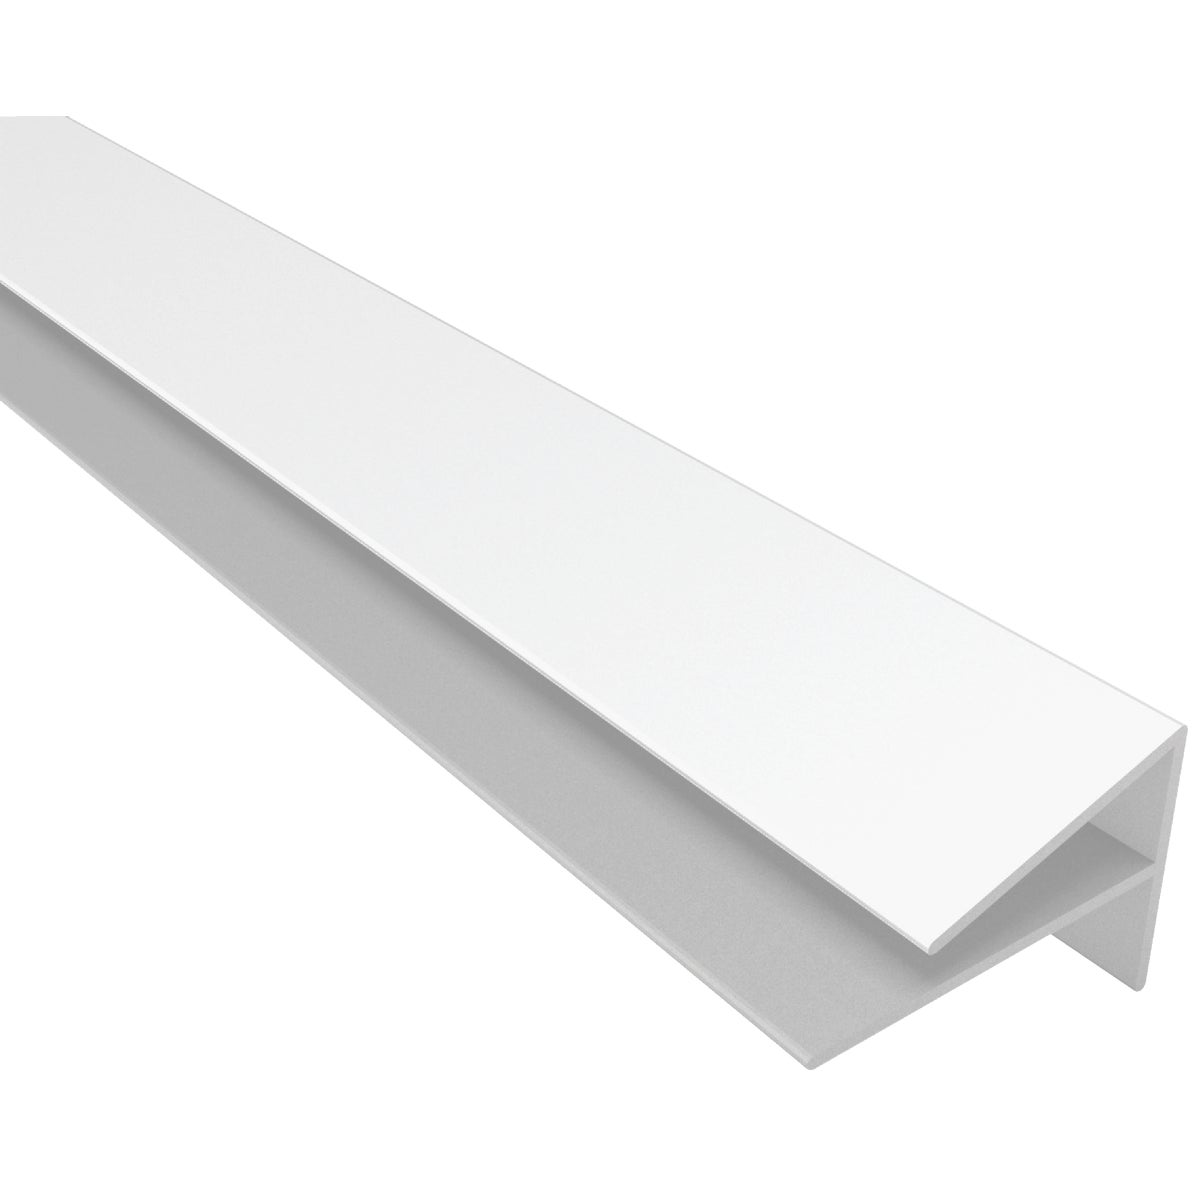 "1/8""X8' WHT OUTSIDE CRNR - 056-008485 by Gossen Corp"